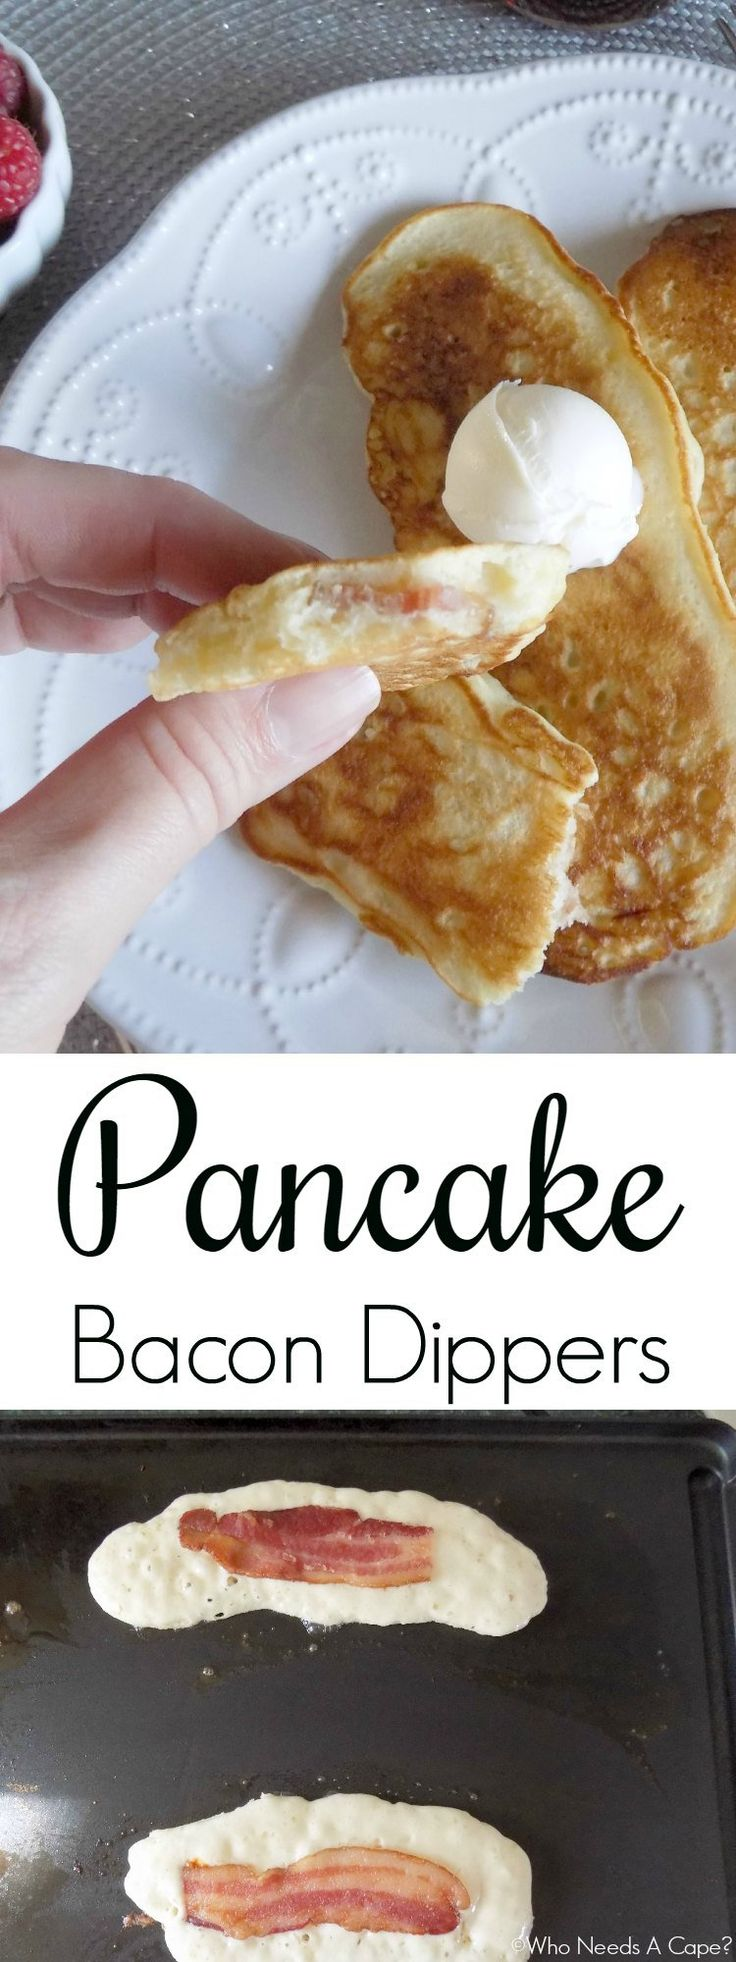 These Pancake Bacon Dippers are a fun way to enjoy pancakes and bacon at the same time. Perfect for holiday breakfast, or brunch, kids gobble them up. [ad] #BaconDoneWright #collectivebias